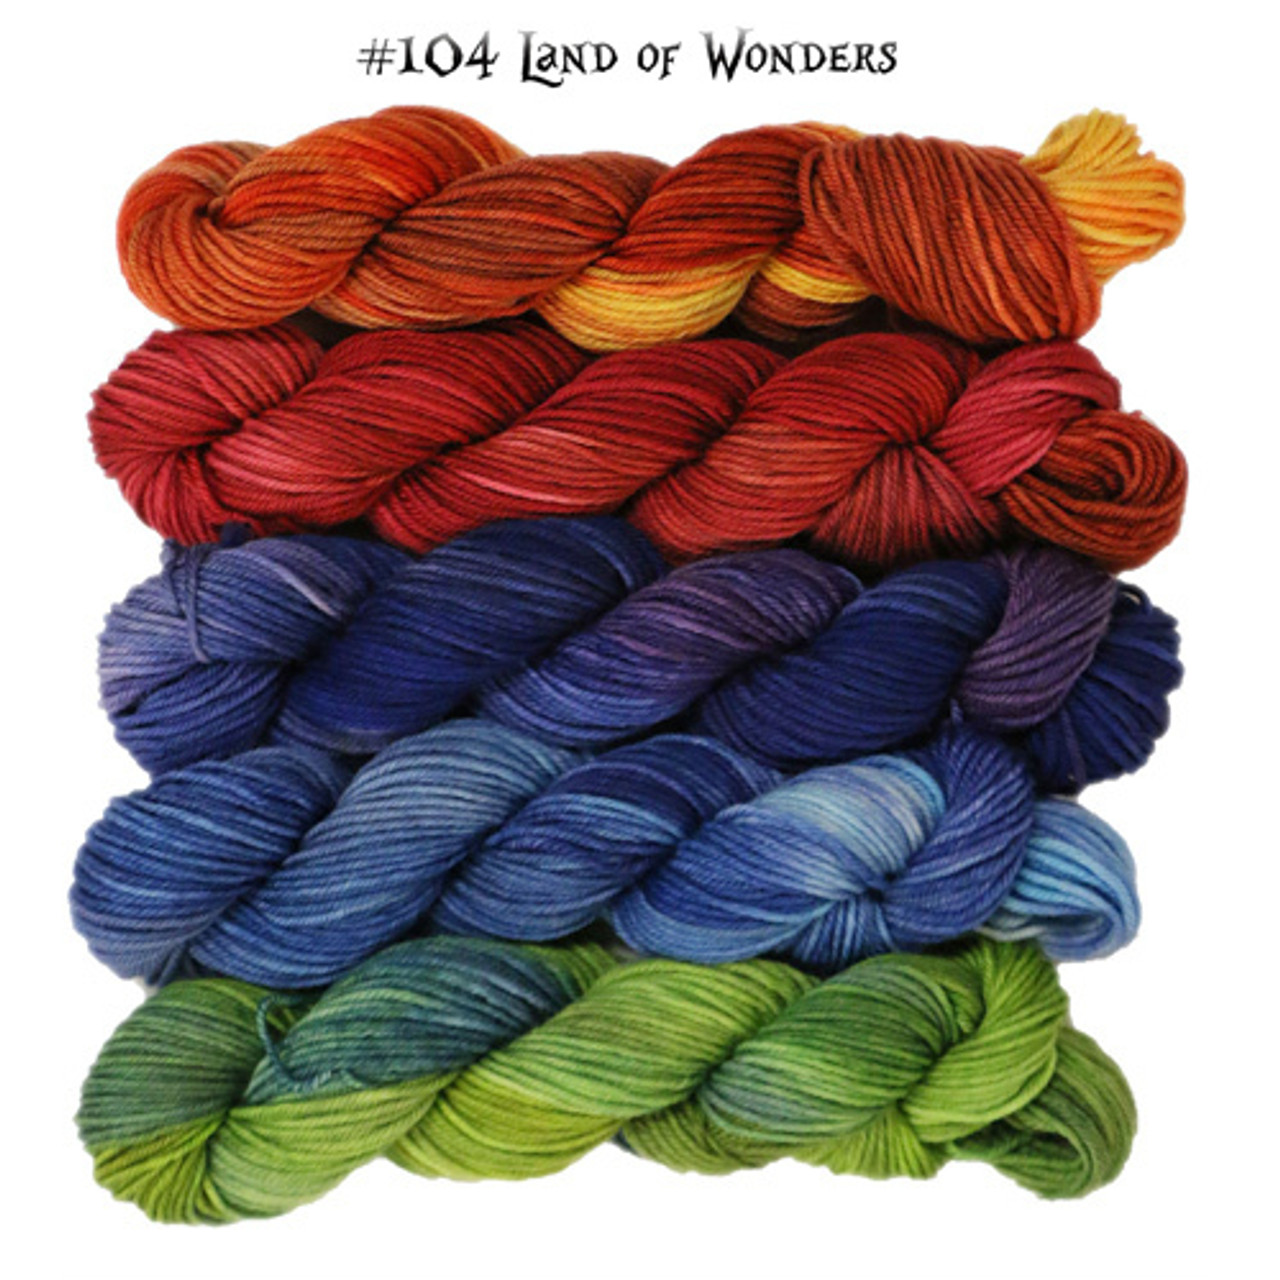 from Frabjous Fibers is Wonderland Yarns - March Hare in Mini Skein Packs